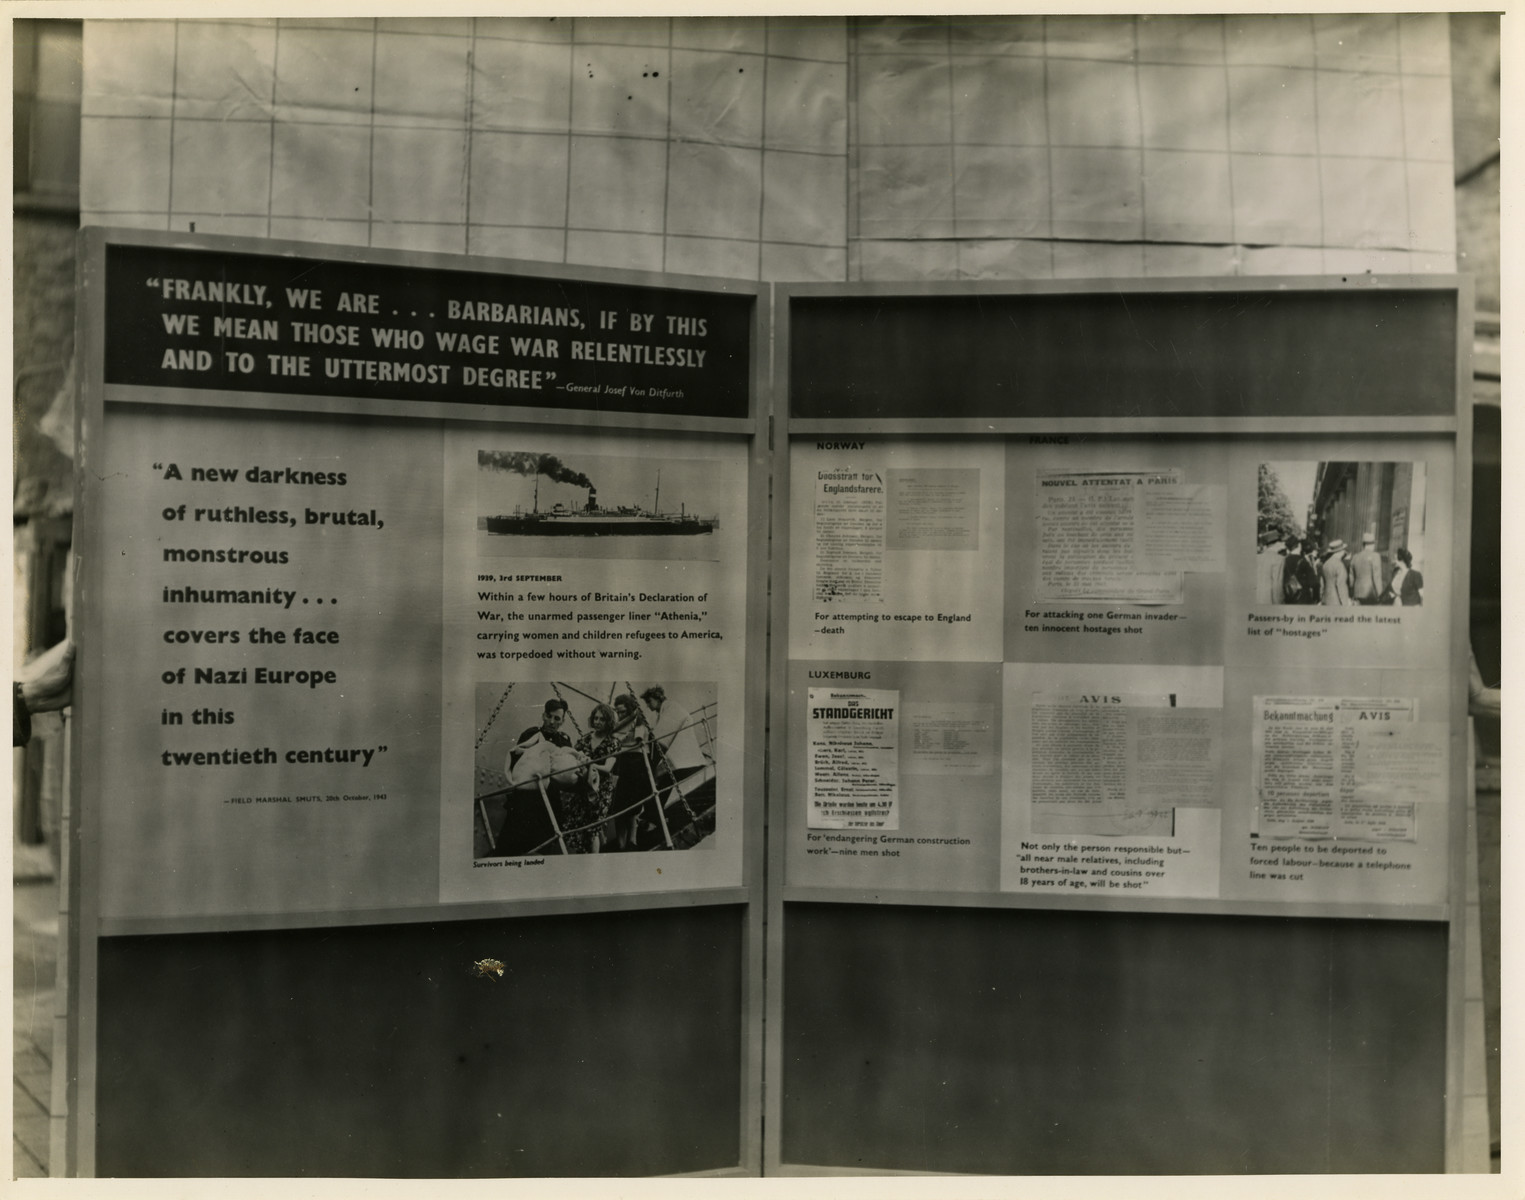 "Panel from a 1944 exhibition in London, England, entitled ""Germany- the Evidence"" showing various Nazi acts of violence.   The panel reads ""' Frankly, we are... barbarians, if by this we mean those who wage war relentlessly and to the uttermost degree' General Josef von Ditfurth.""  Beneath is another quotation ""' A new darkness of ruthless, brutal, monstrous inhumanity... covers the face of Nazi Europe in this twentieth century. ' Field Marshall Smuts 20th, October 1943.""   The back of the photo reads ""British Official Photograph; Distrbuted by the Ministry of Information. D. ; The Evil We Fight.; Ministry of Information Exhibition priduced by Display & Exhibitions Division for show all over Great Britain.; Display panel"""